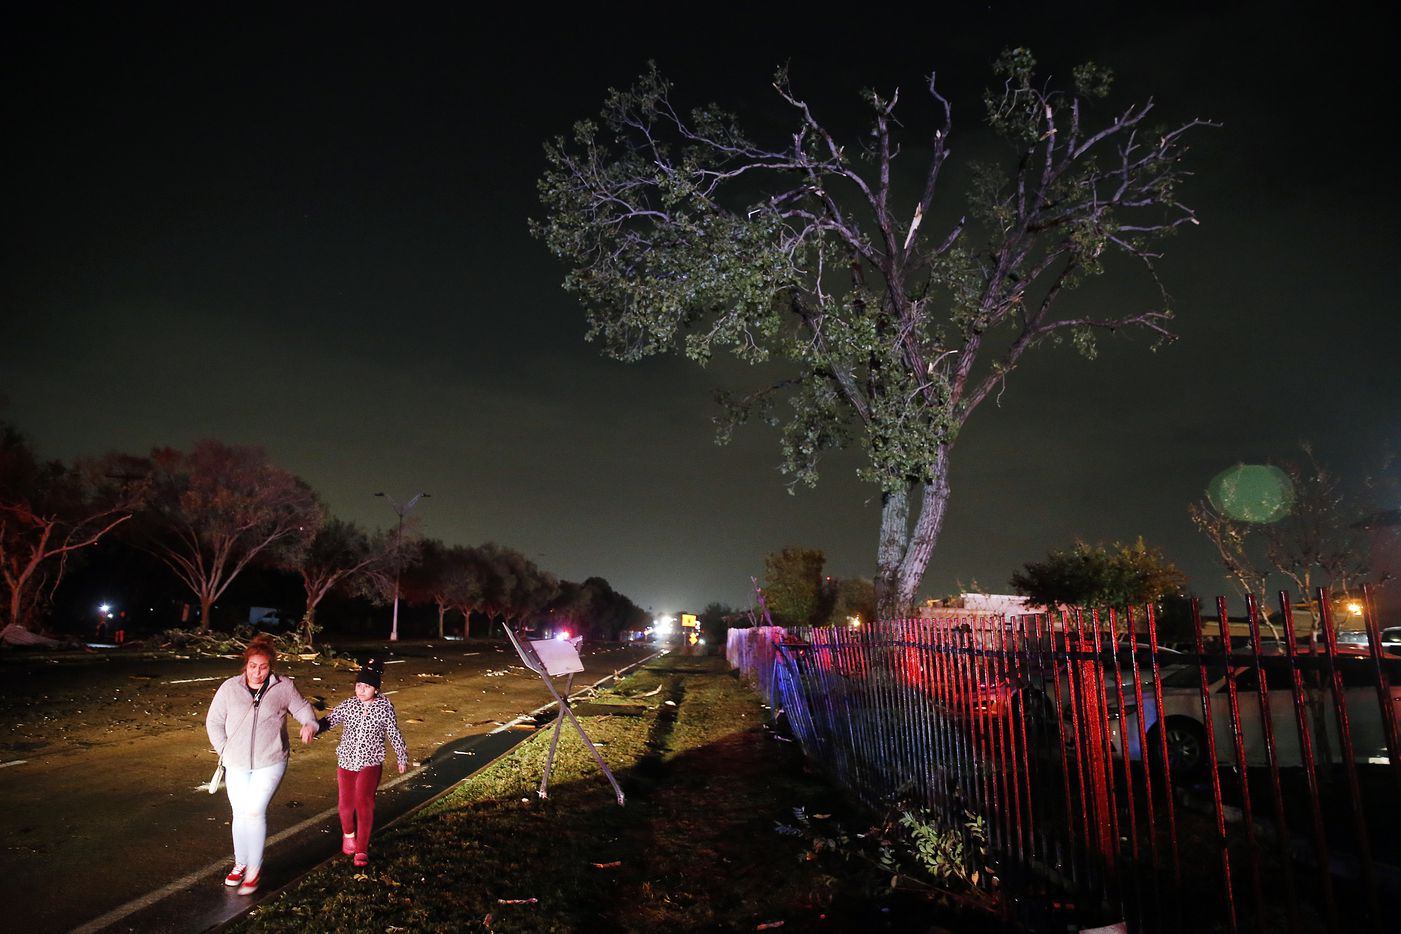 People walk along the debris strewn Pioneer Parkway in Arlington after a tornado-warned storm tore the roofs off The Mirage Apartments, Tuesday night, November 24, 2020. Air conditioner units and other structural debris were scattered across the property and street.